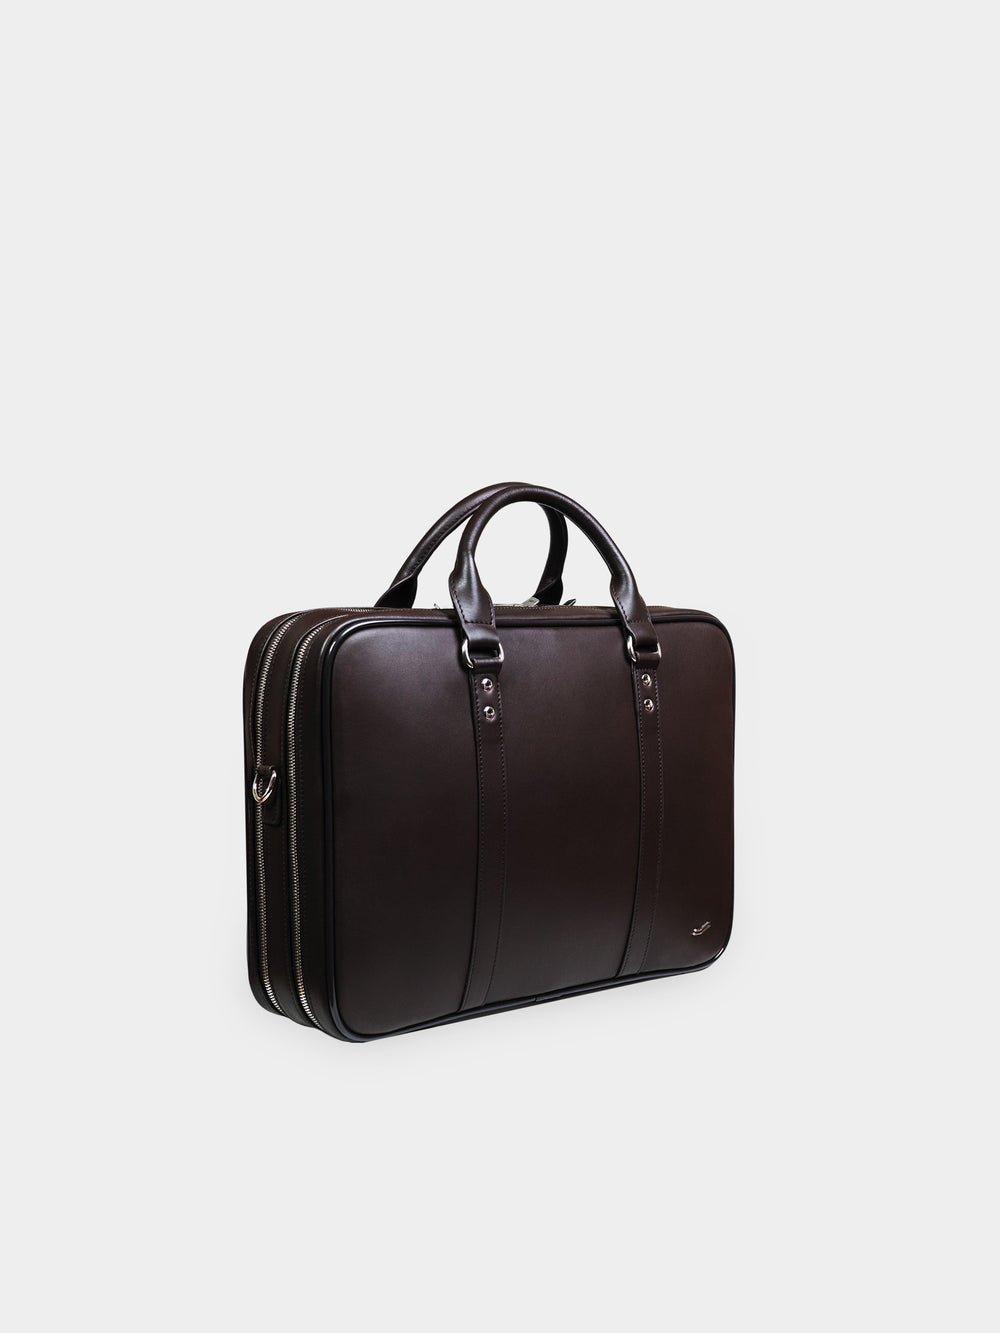 f26 brown leather double briefcase